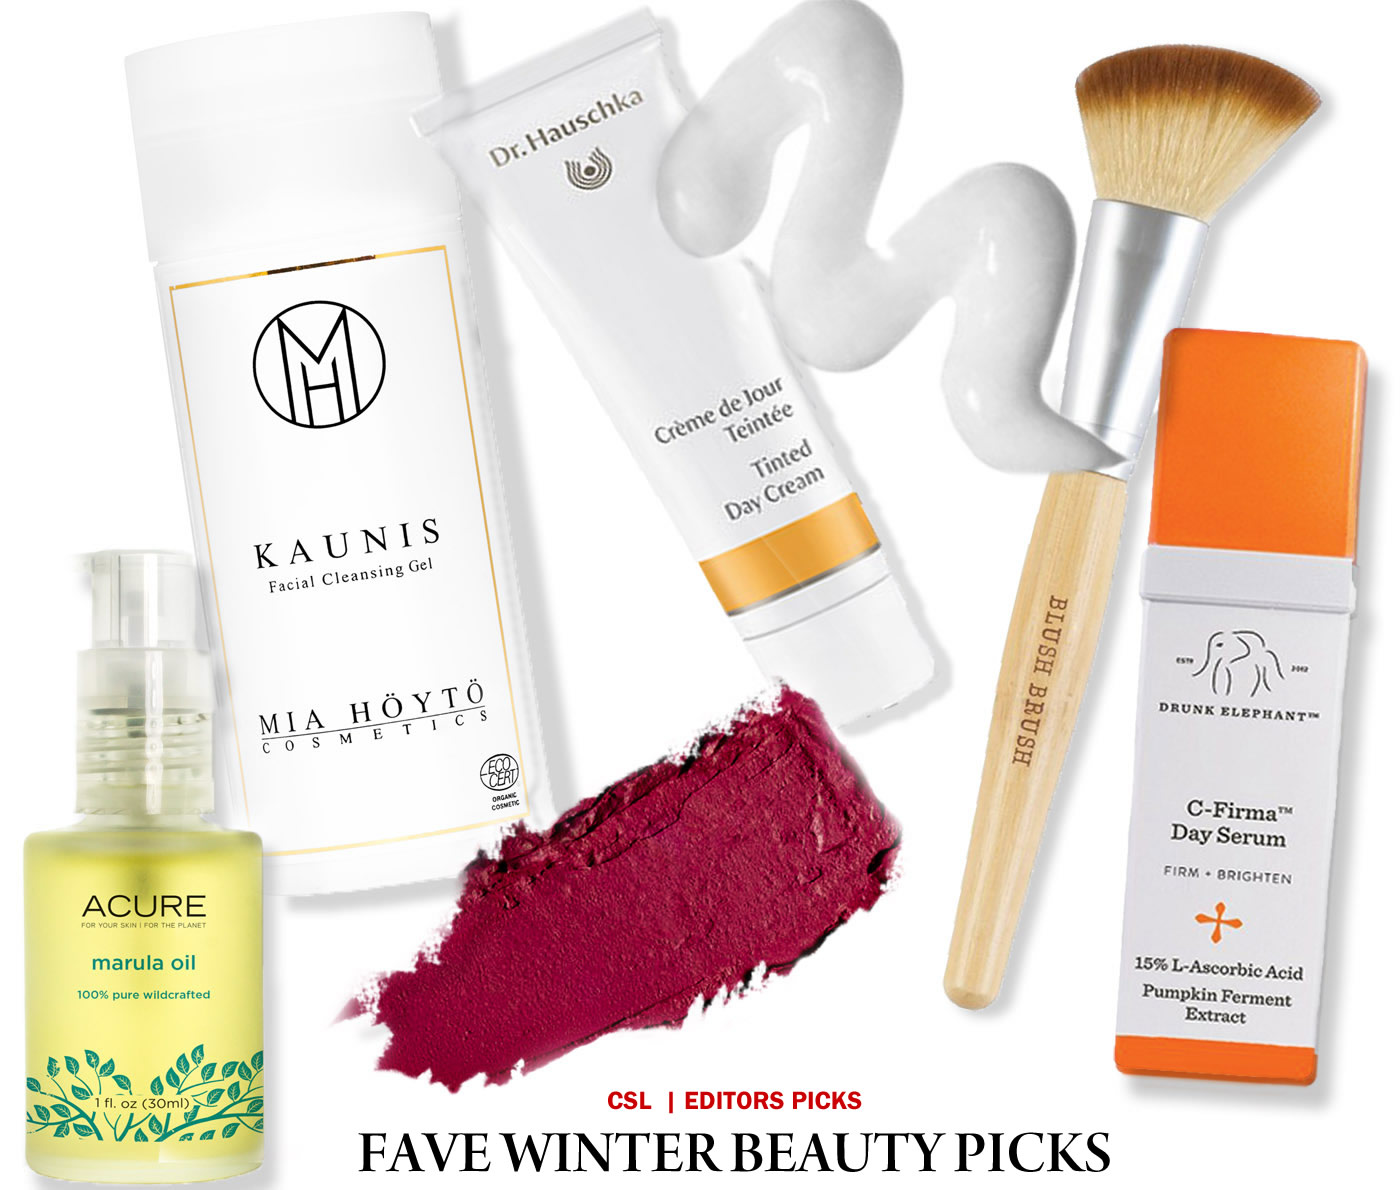 City Style and Living Magazine editors favourite eco beauty products for winter 2016/17